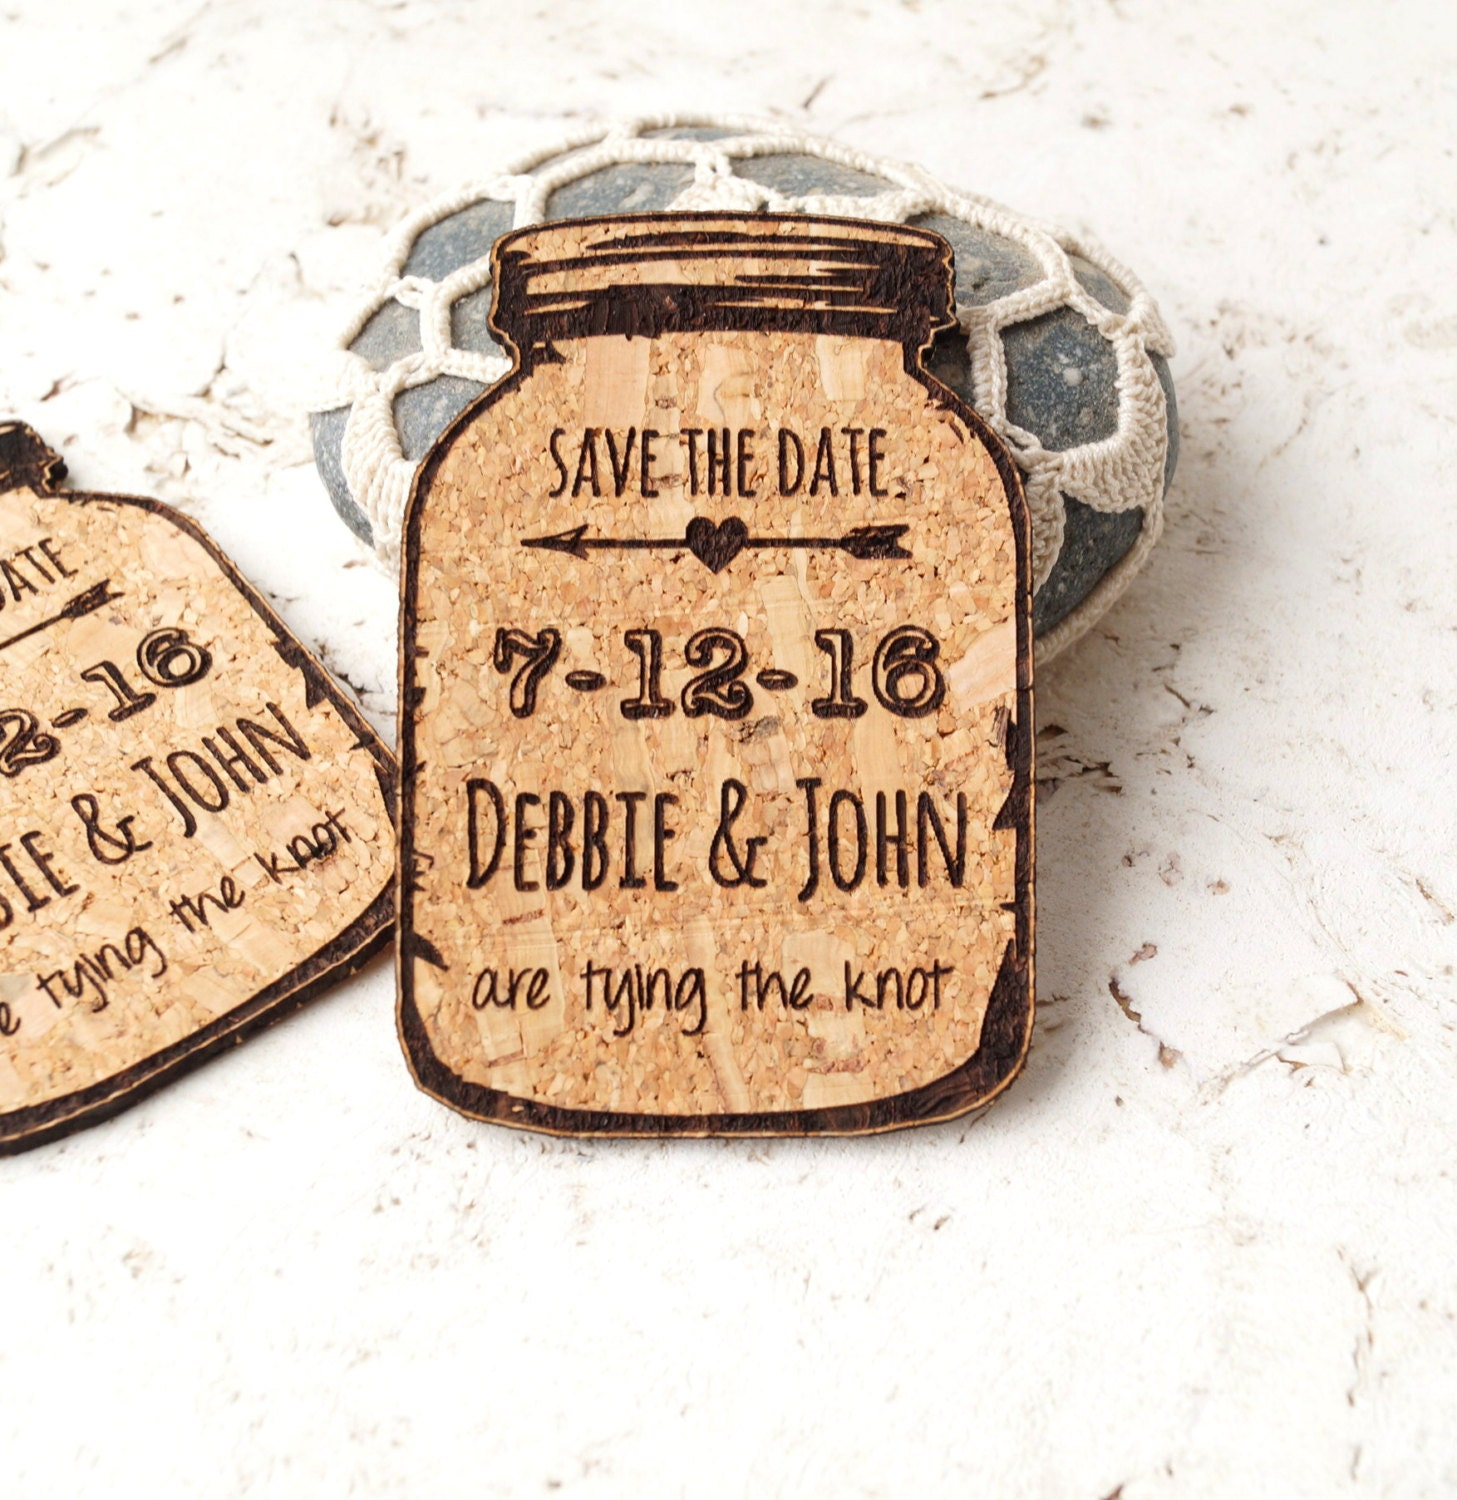 Wedding Save The Date Magnets: Save-the-date Magnets Rustic Wedding Save The Dates Cork